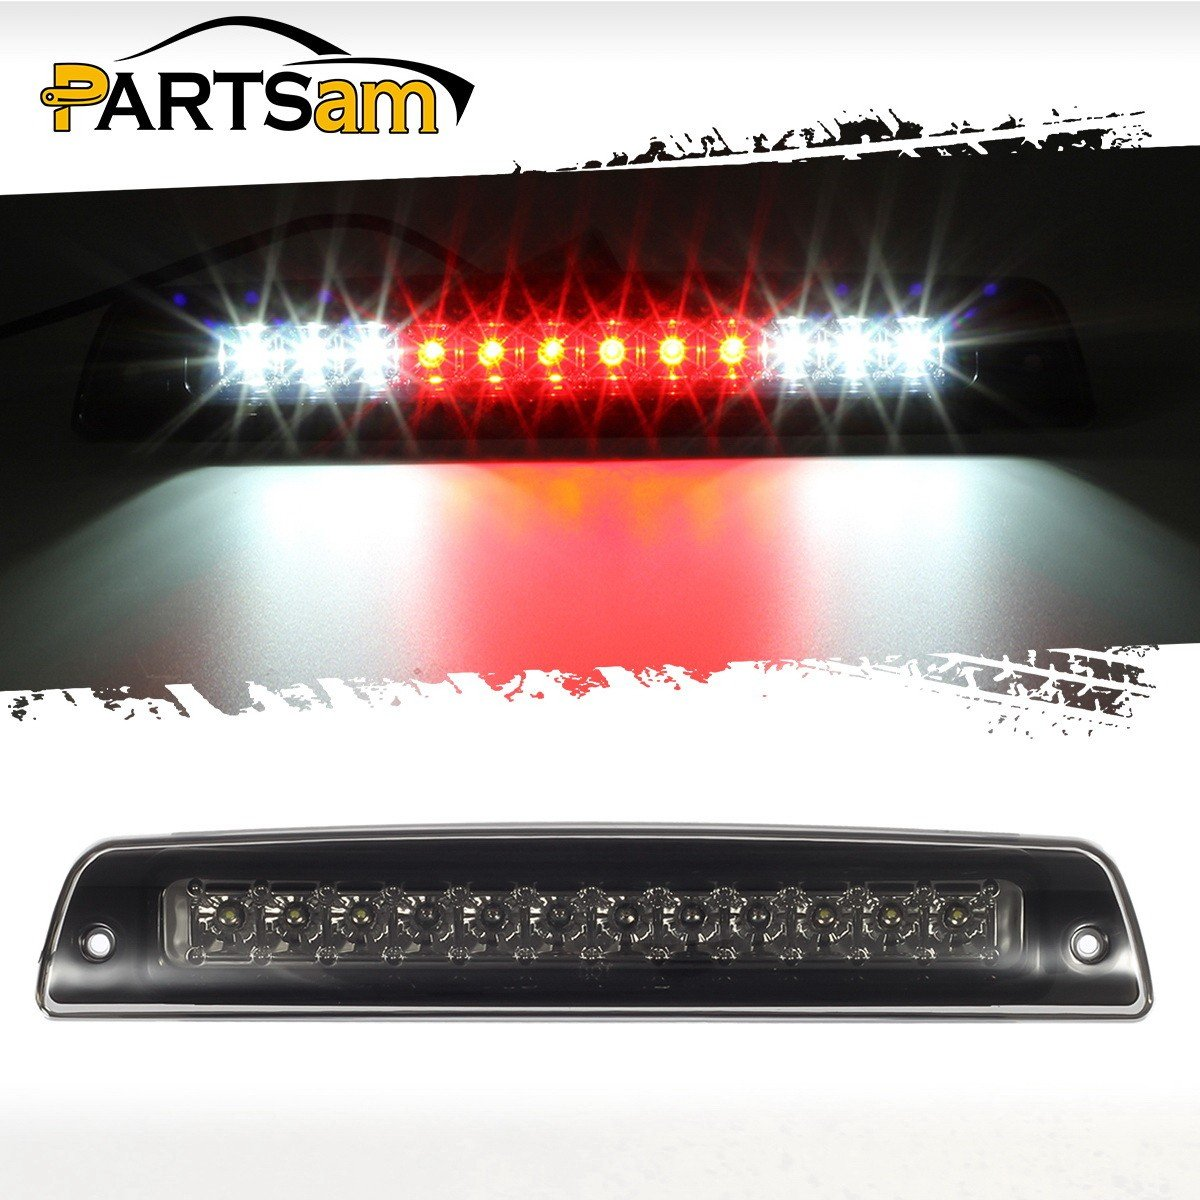 Partsam Third Brake Light for 1994-2001 Dodge Ram 1500 2500 3500 Smoke Lens Red/White LED High Mount 3rd Third Brake Cab Cargo Stop Tail Rear Light Lamp